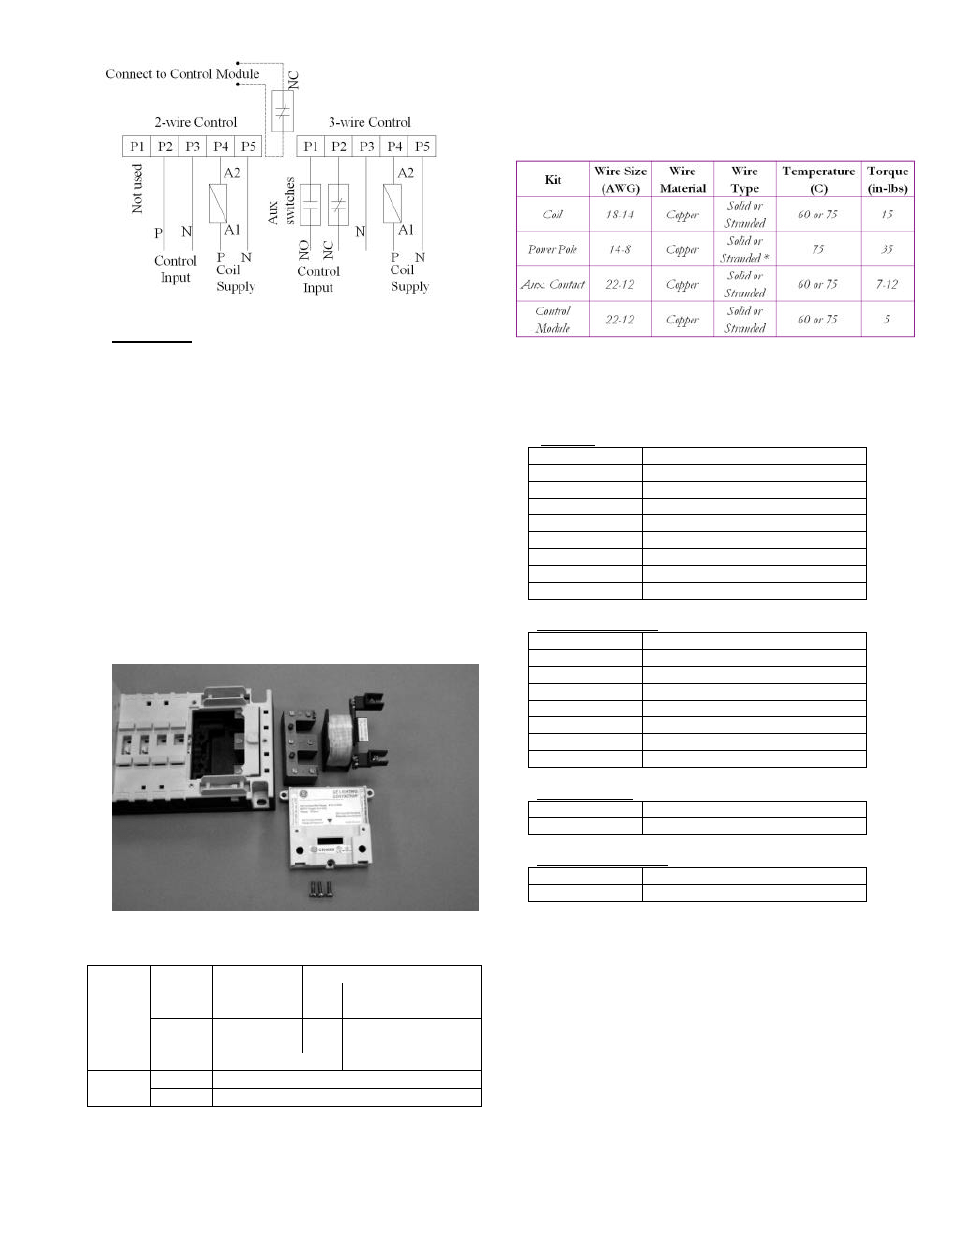 ge industrial solutions cr460 lighting contactor series page3?resize\\\=665%2C861 ge lighting contactor wiring diagrams starter contactor diagram Basic 12 Volt Wiring Diagrams at downloadfilm.co